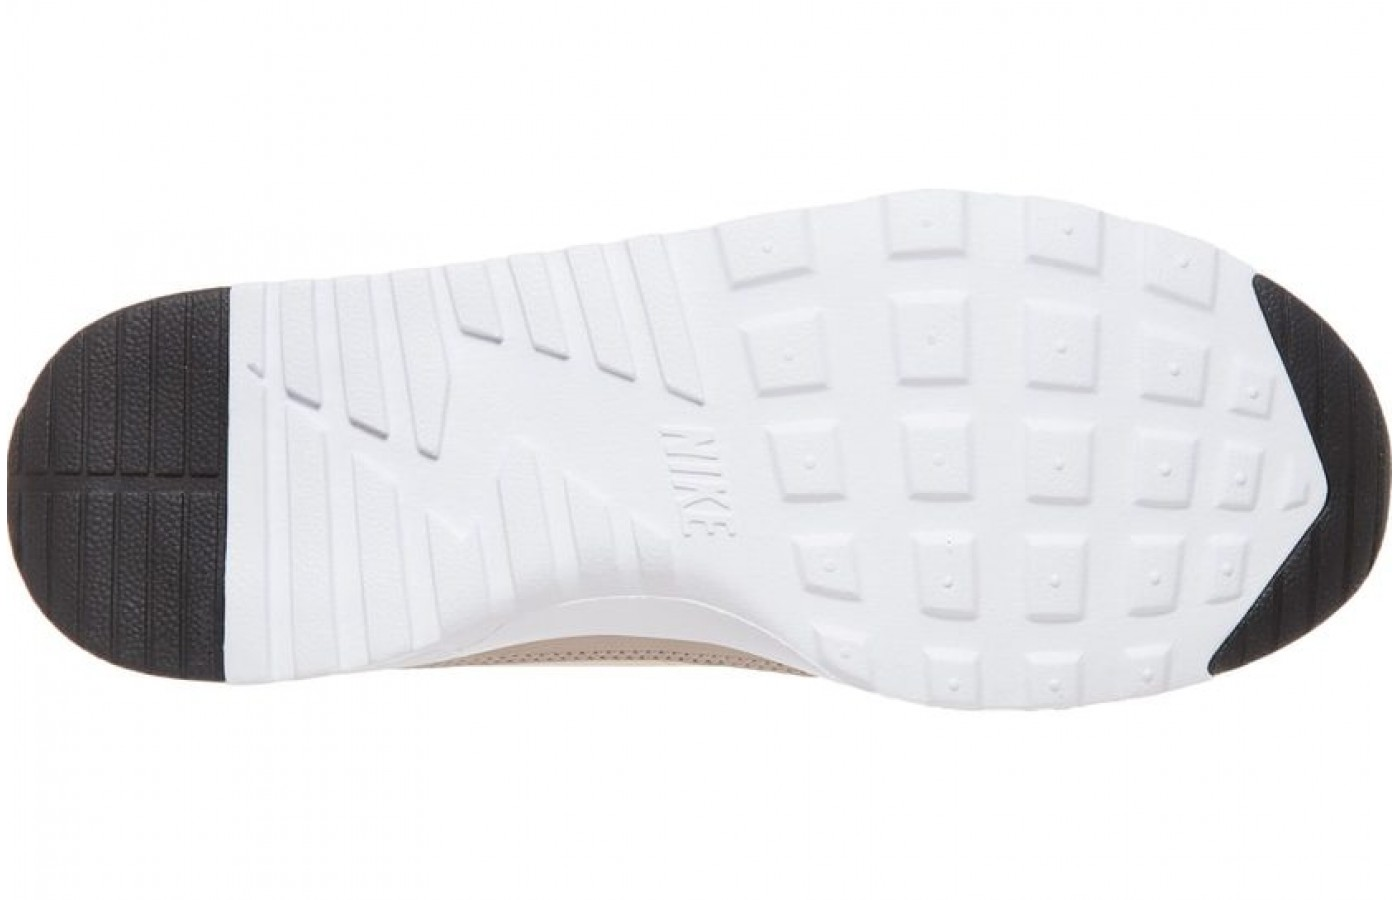 Tread of the Nike Max Air Thea, better tread made of quality materials for better traction